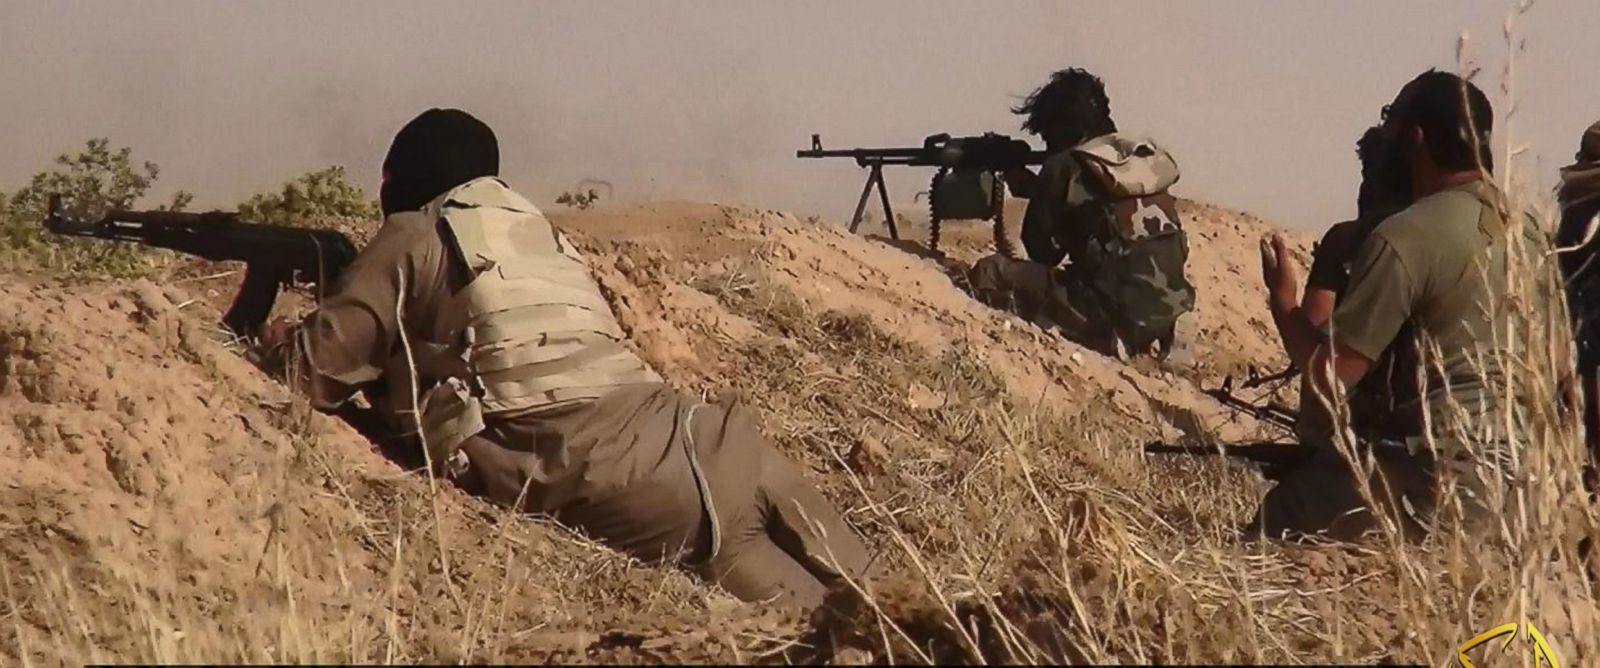 PHOTO: A photograph released by the jihadist affiliated group Albaraka News allegedly shows fighters from the Islamic movement ISIS aiming at advancing Iraqi troops at an undisclosed location near the border between Syria and Iraq, 12 June 2014.